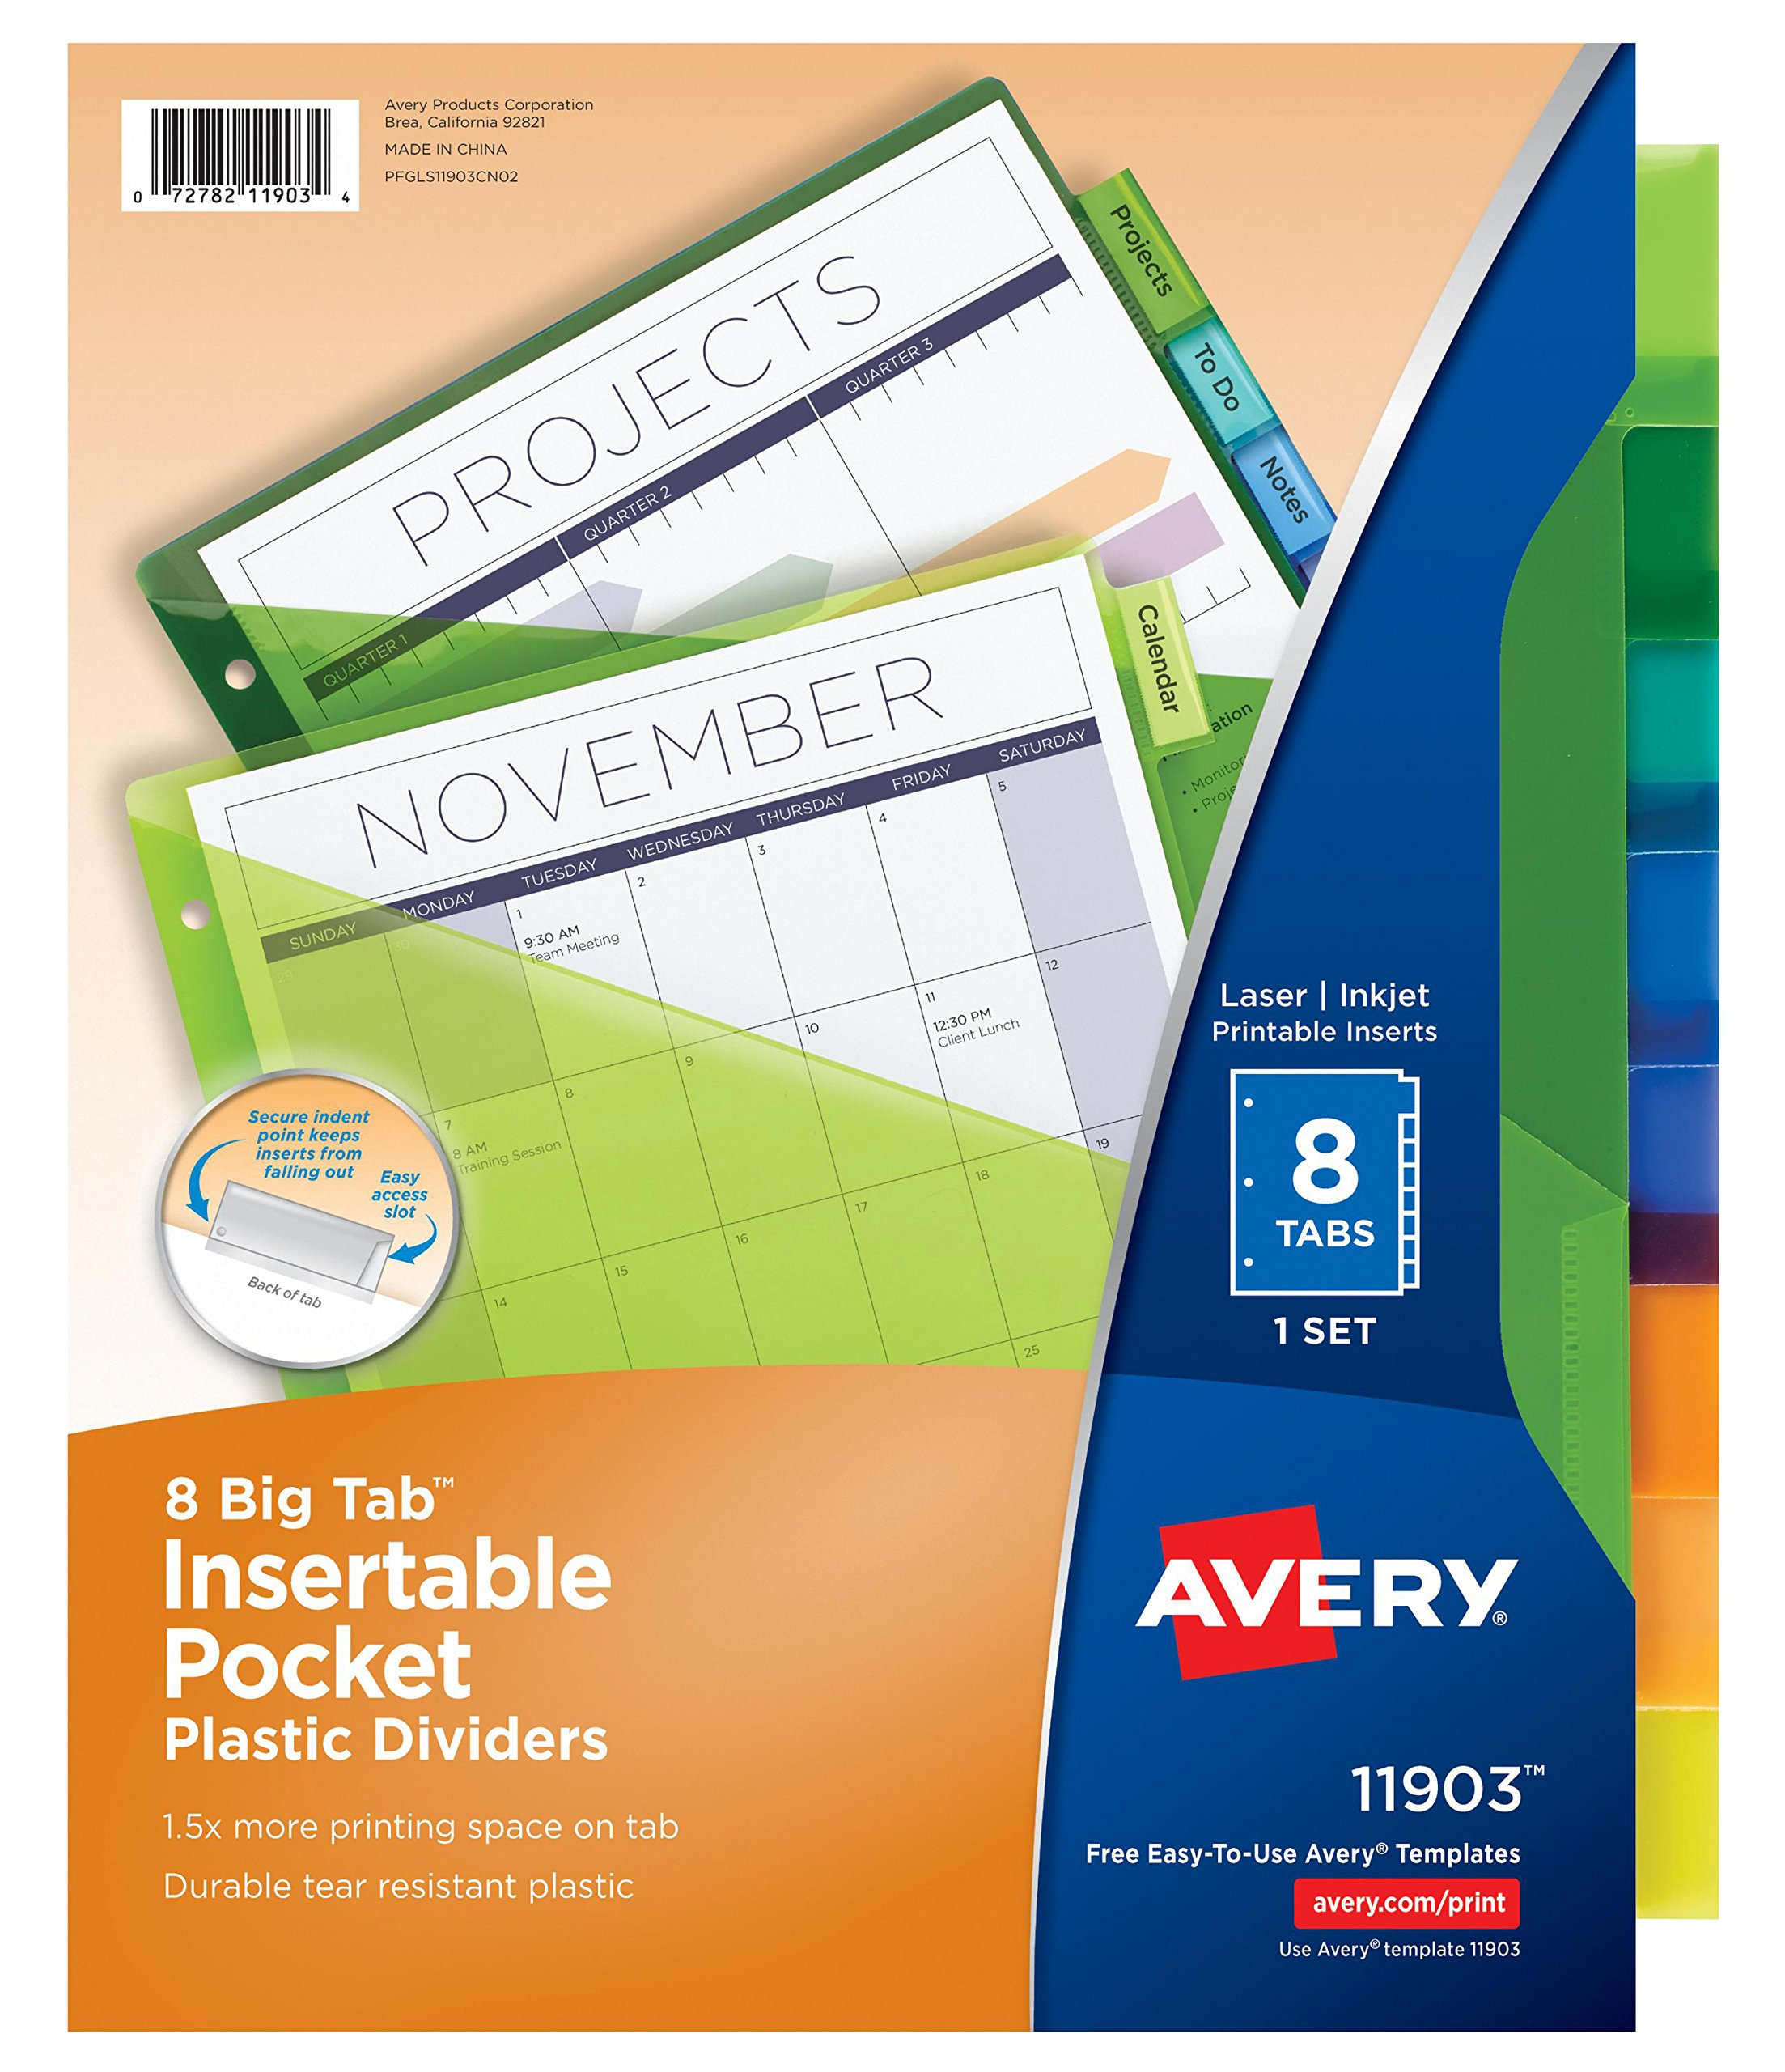 Avery Big Tab Insertable Plastic Dividers with Pockets, 8 Multicolor Tabs, Case Pack of 24 Sets (11903) by Avery (Image #1)